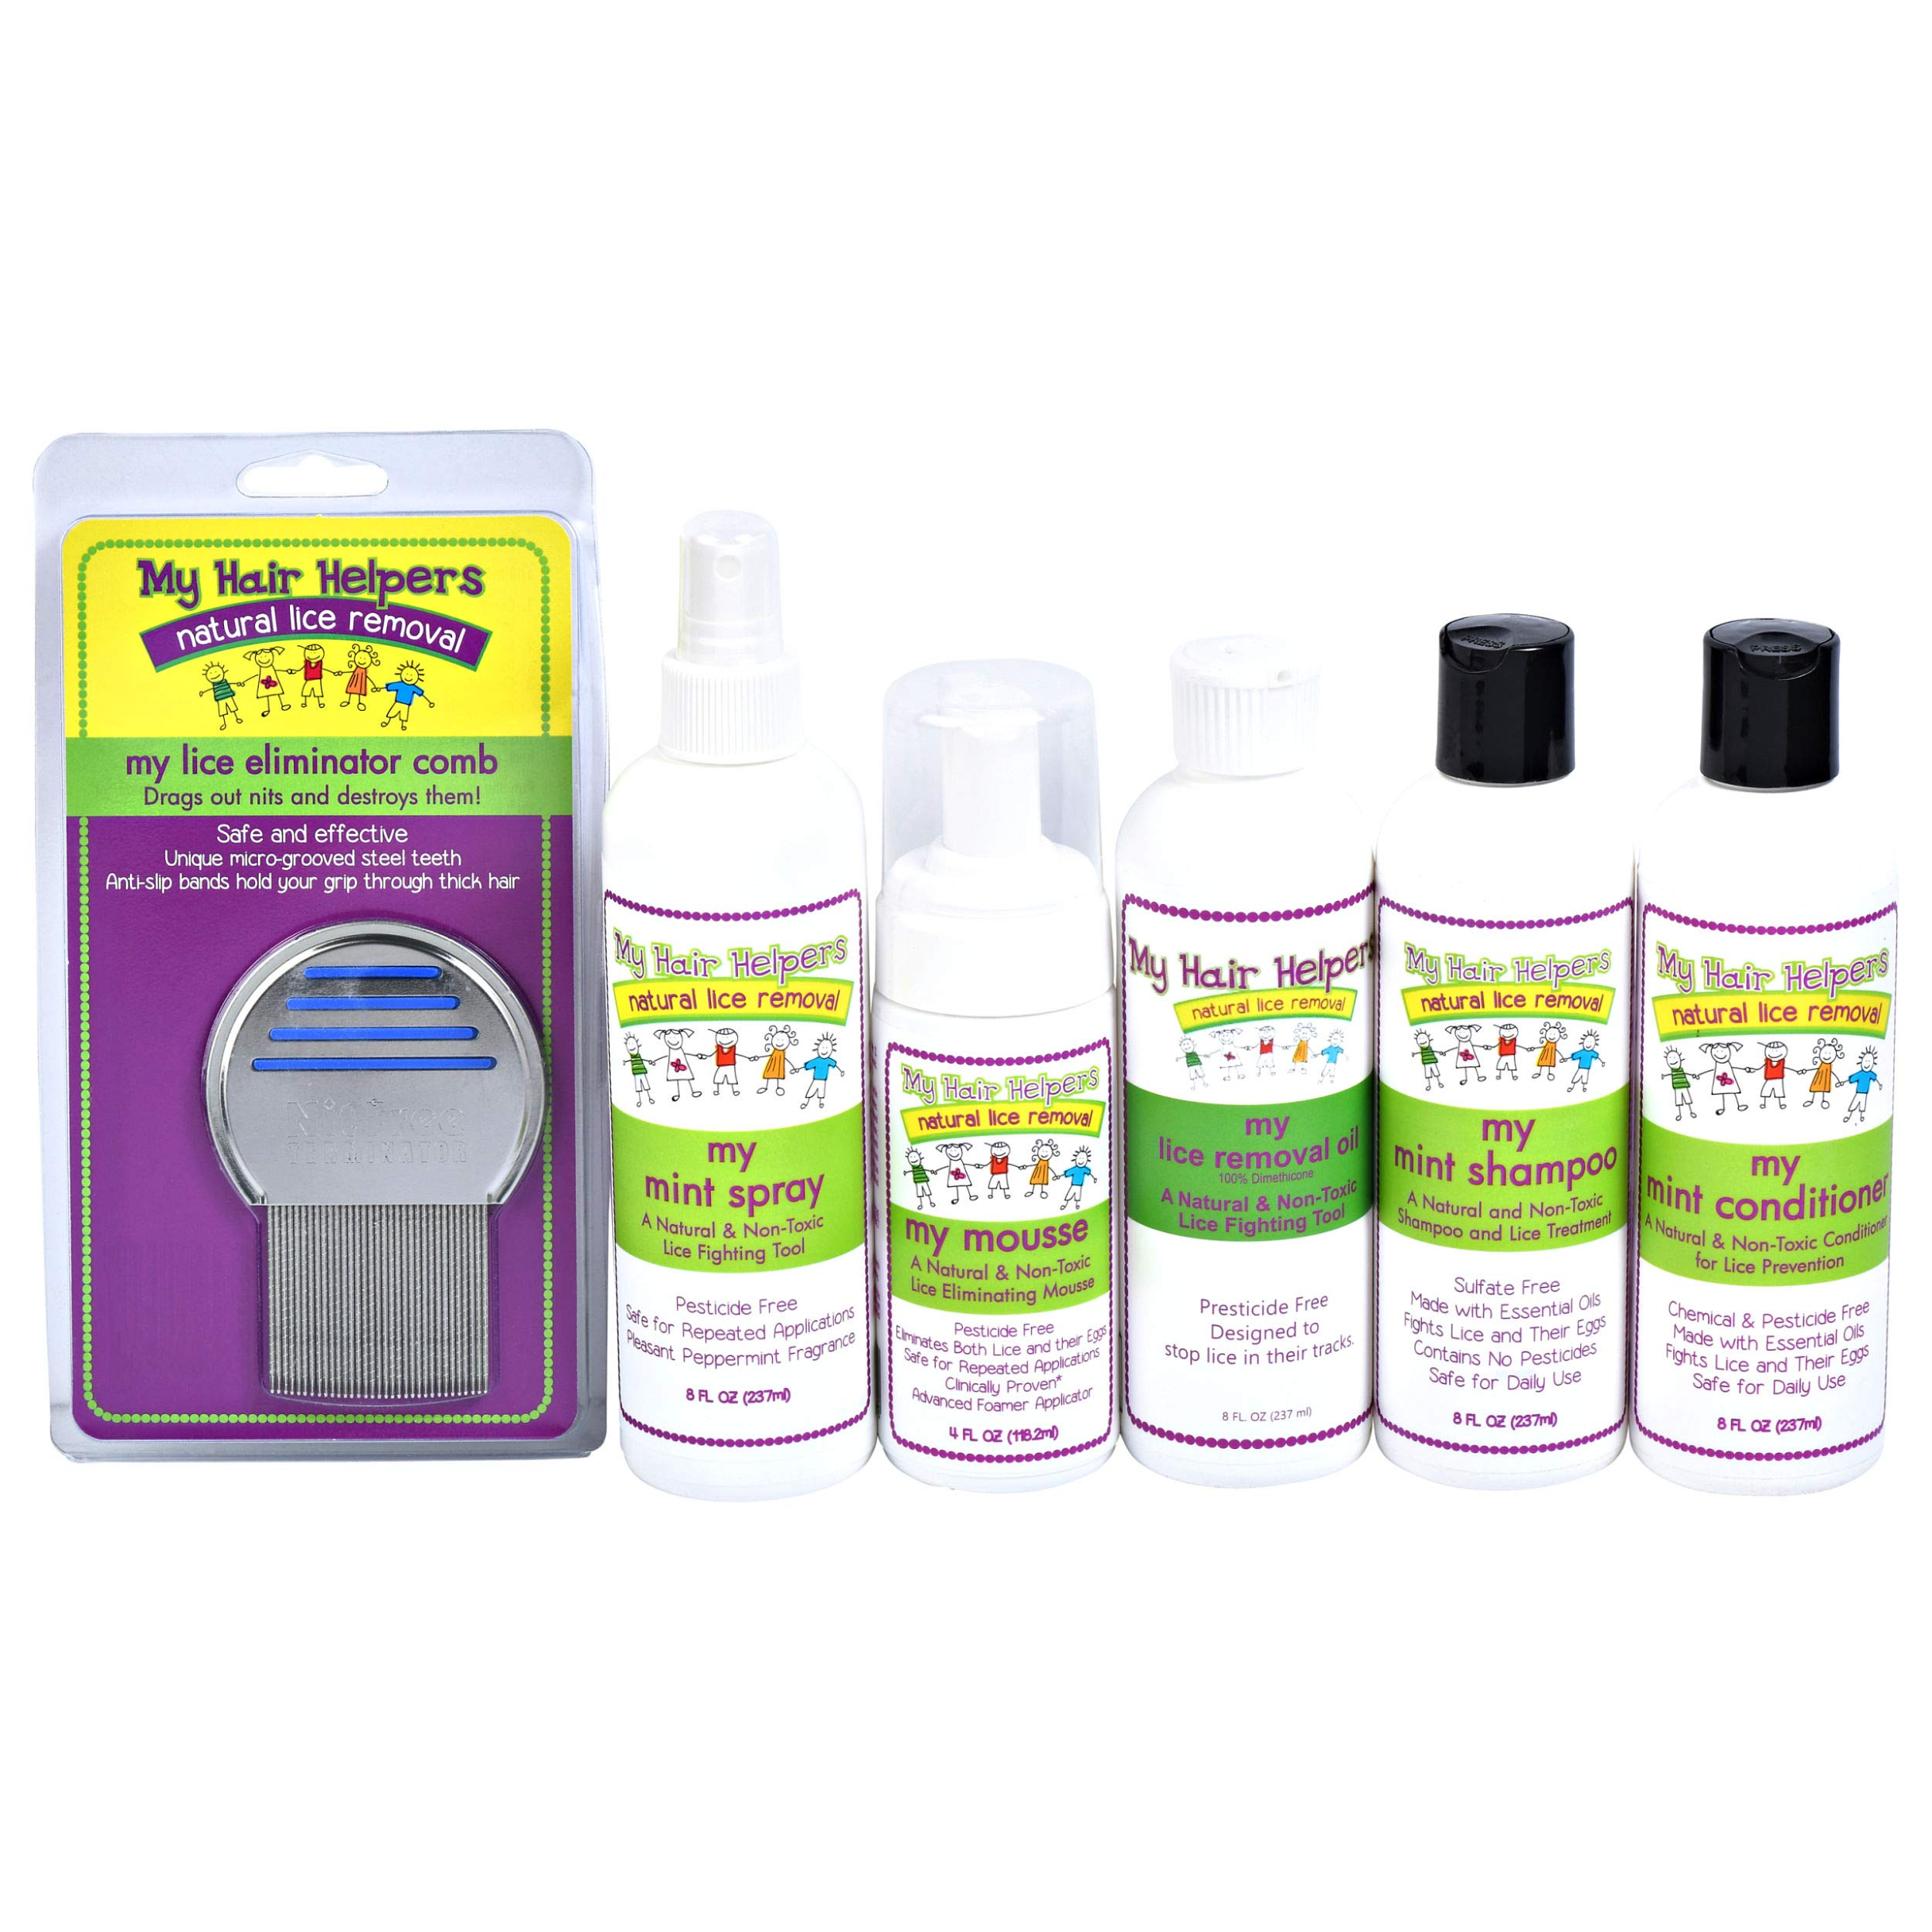 Family-Size Head Lice Treatment - Kit Includes Nit Removal Comb, Mousse, Mint Shampoo and Conditioner, Repellent Spray, and Removal Oil Treats 2-3 Kids by MY HAIR HELPERS NATURAL LICE REMOVAL